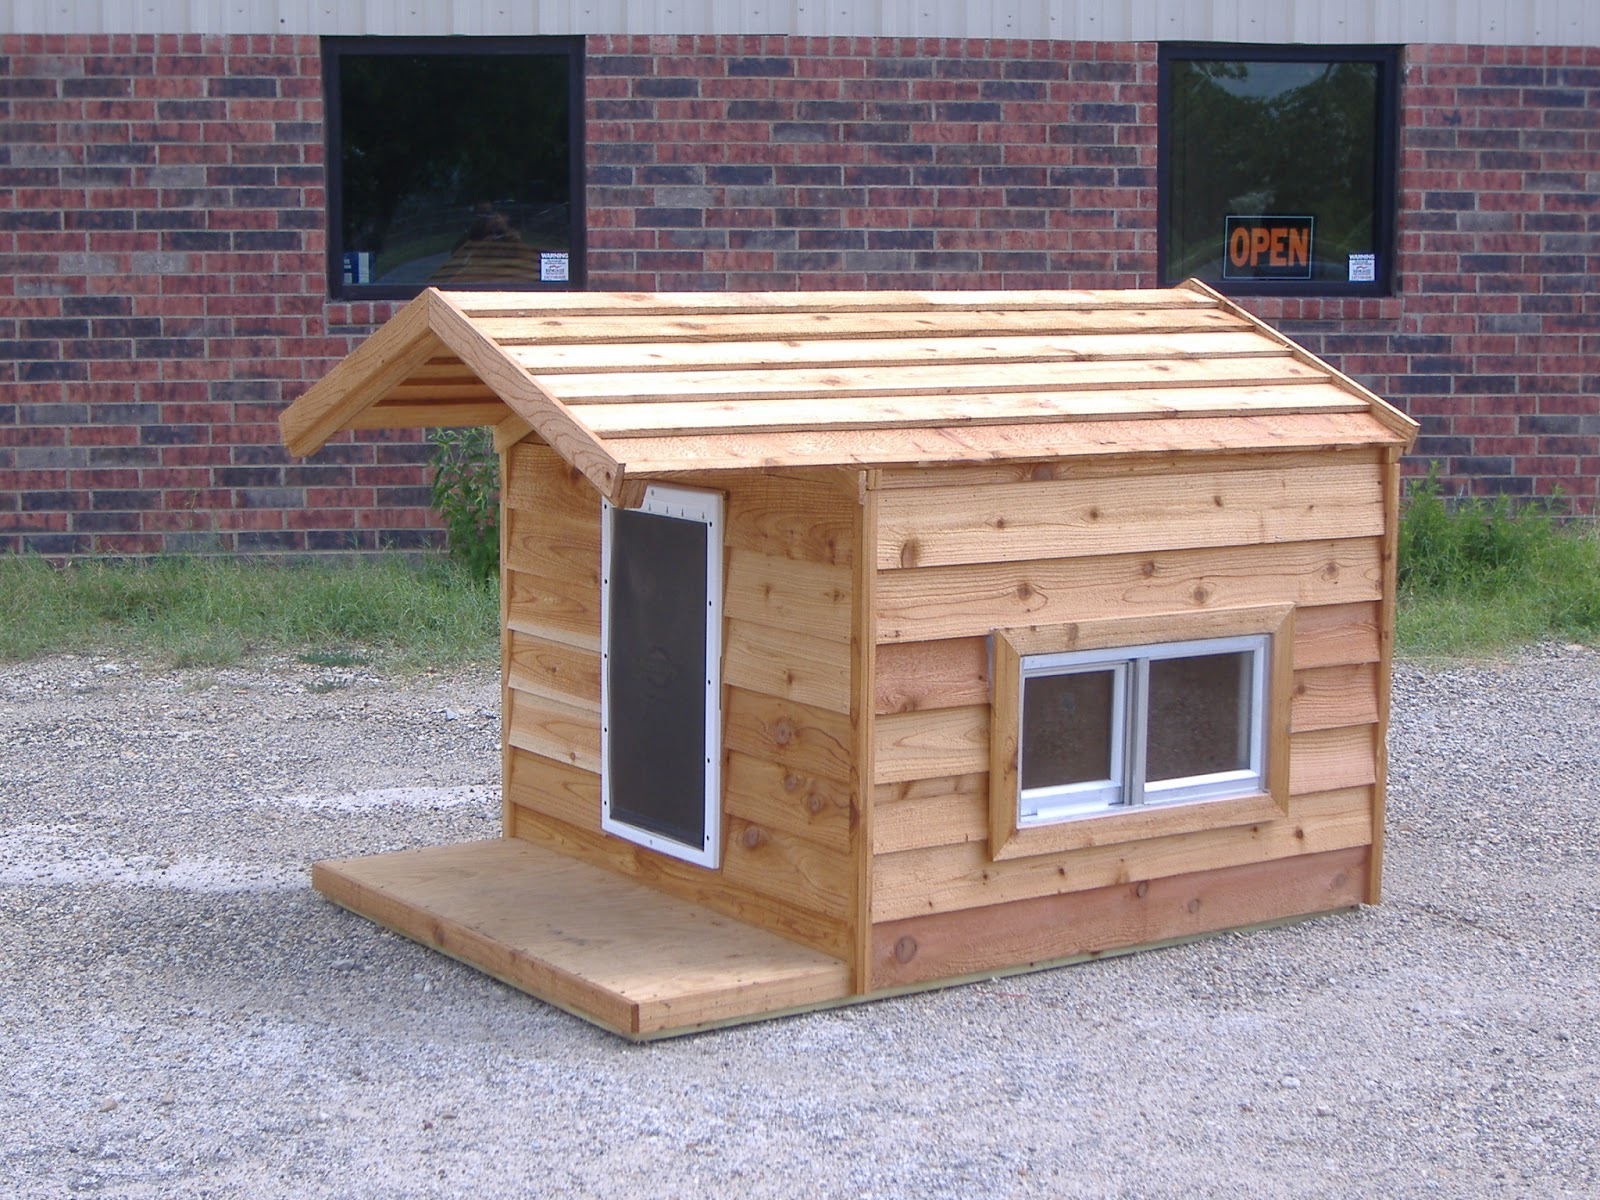 Giant dog houses for sale home improvement for Insulated heated dog house